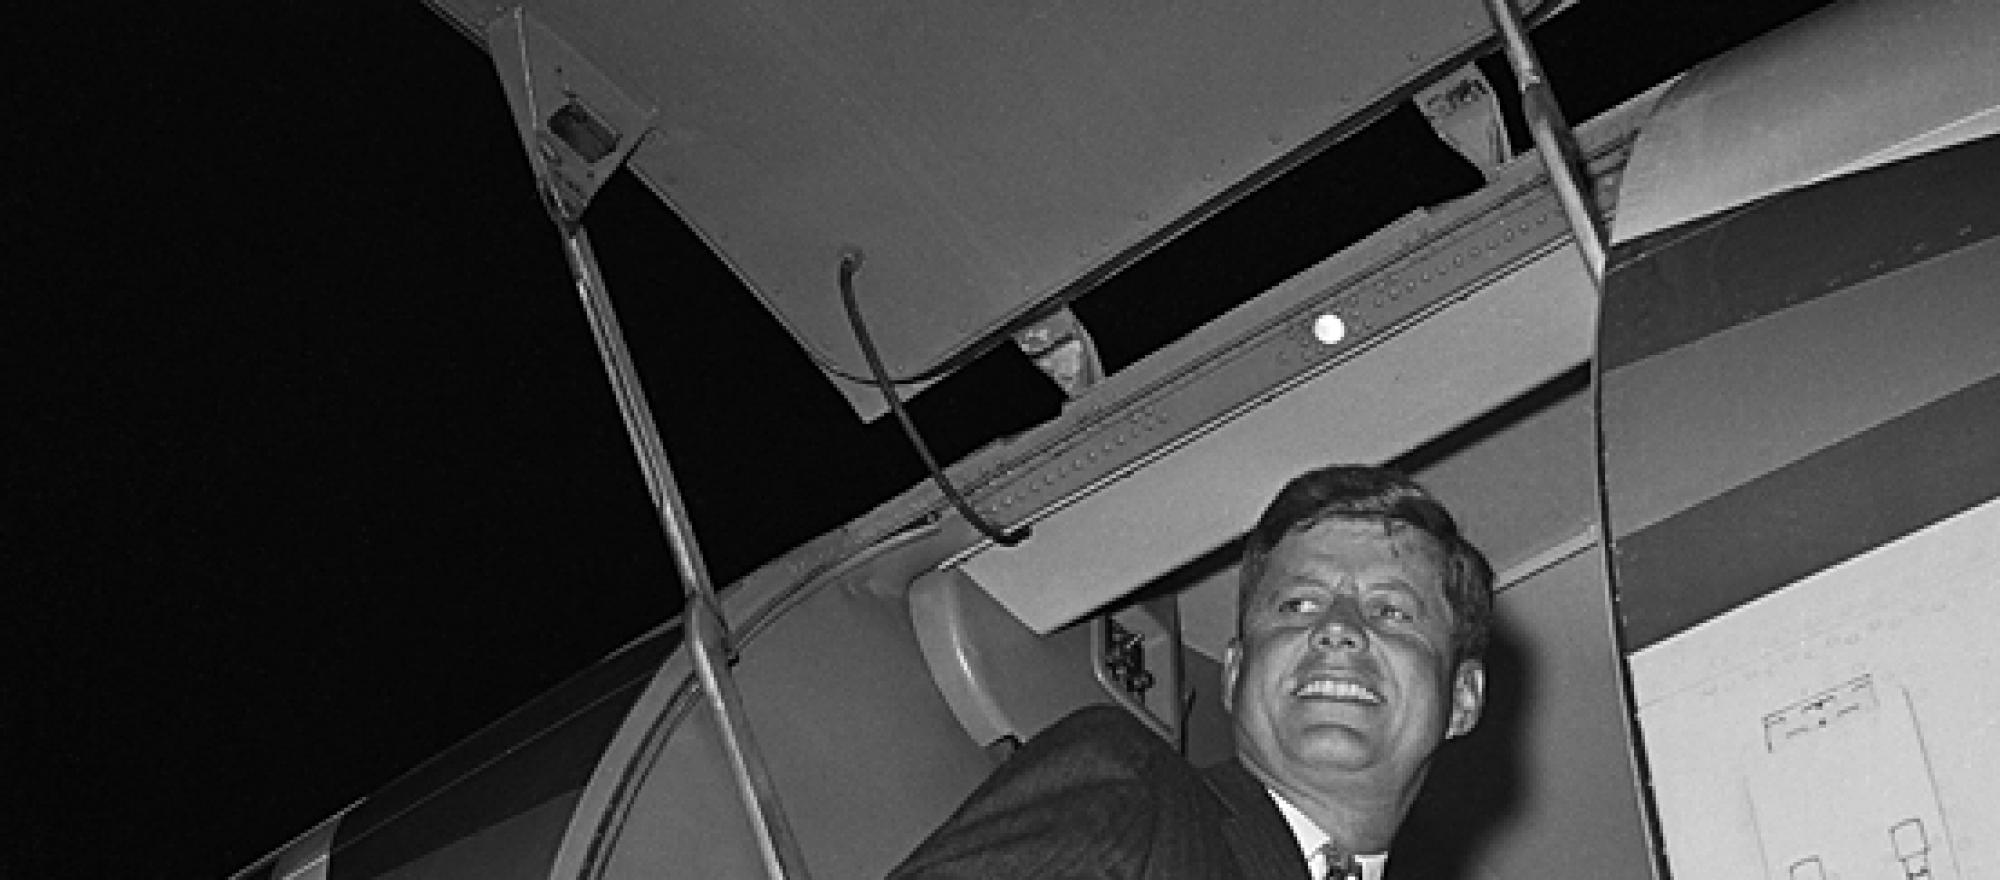 President-elect John F. Kennedy enters his airplane in 1960